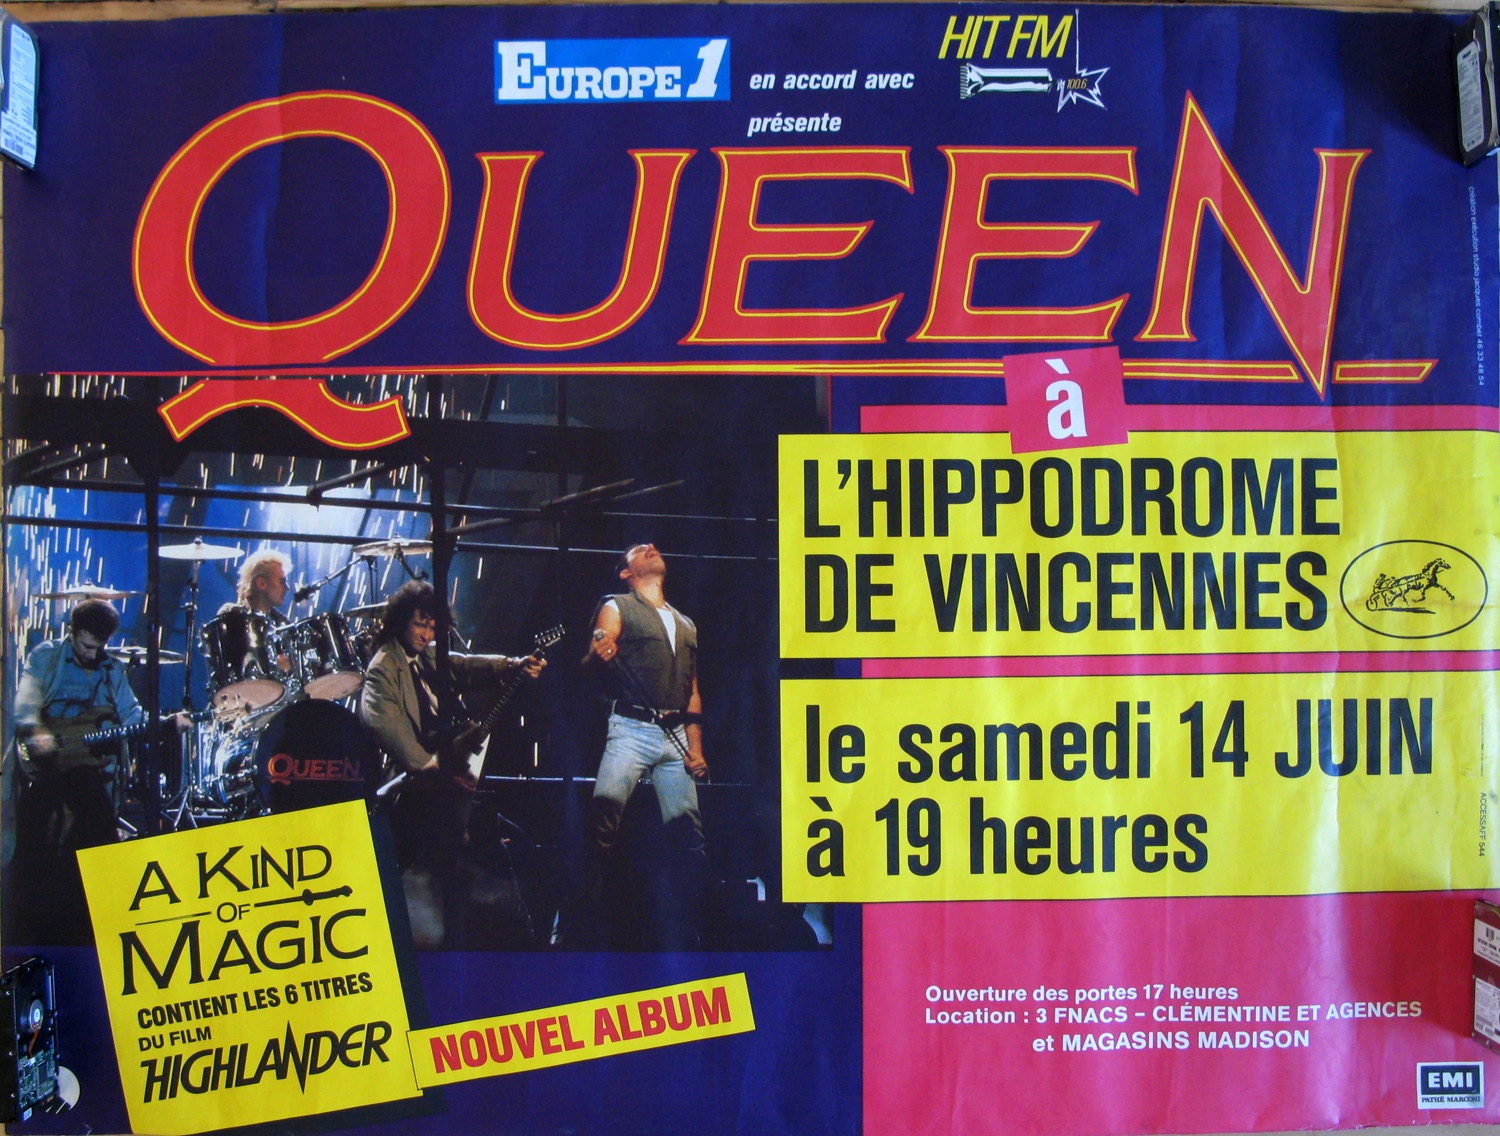 Queen in Paris on 14.06.1986